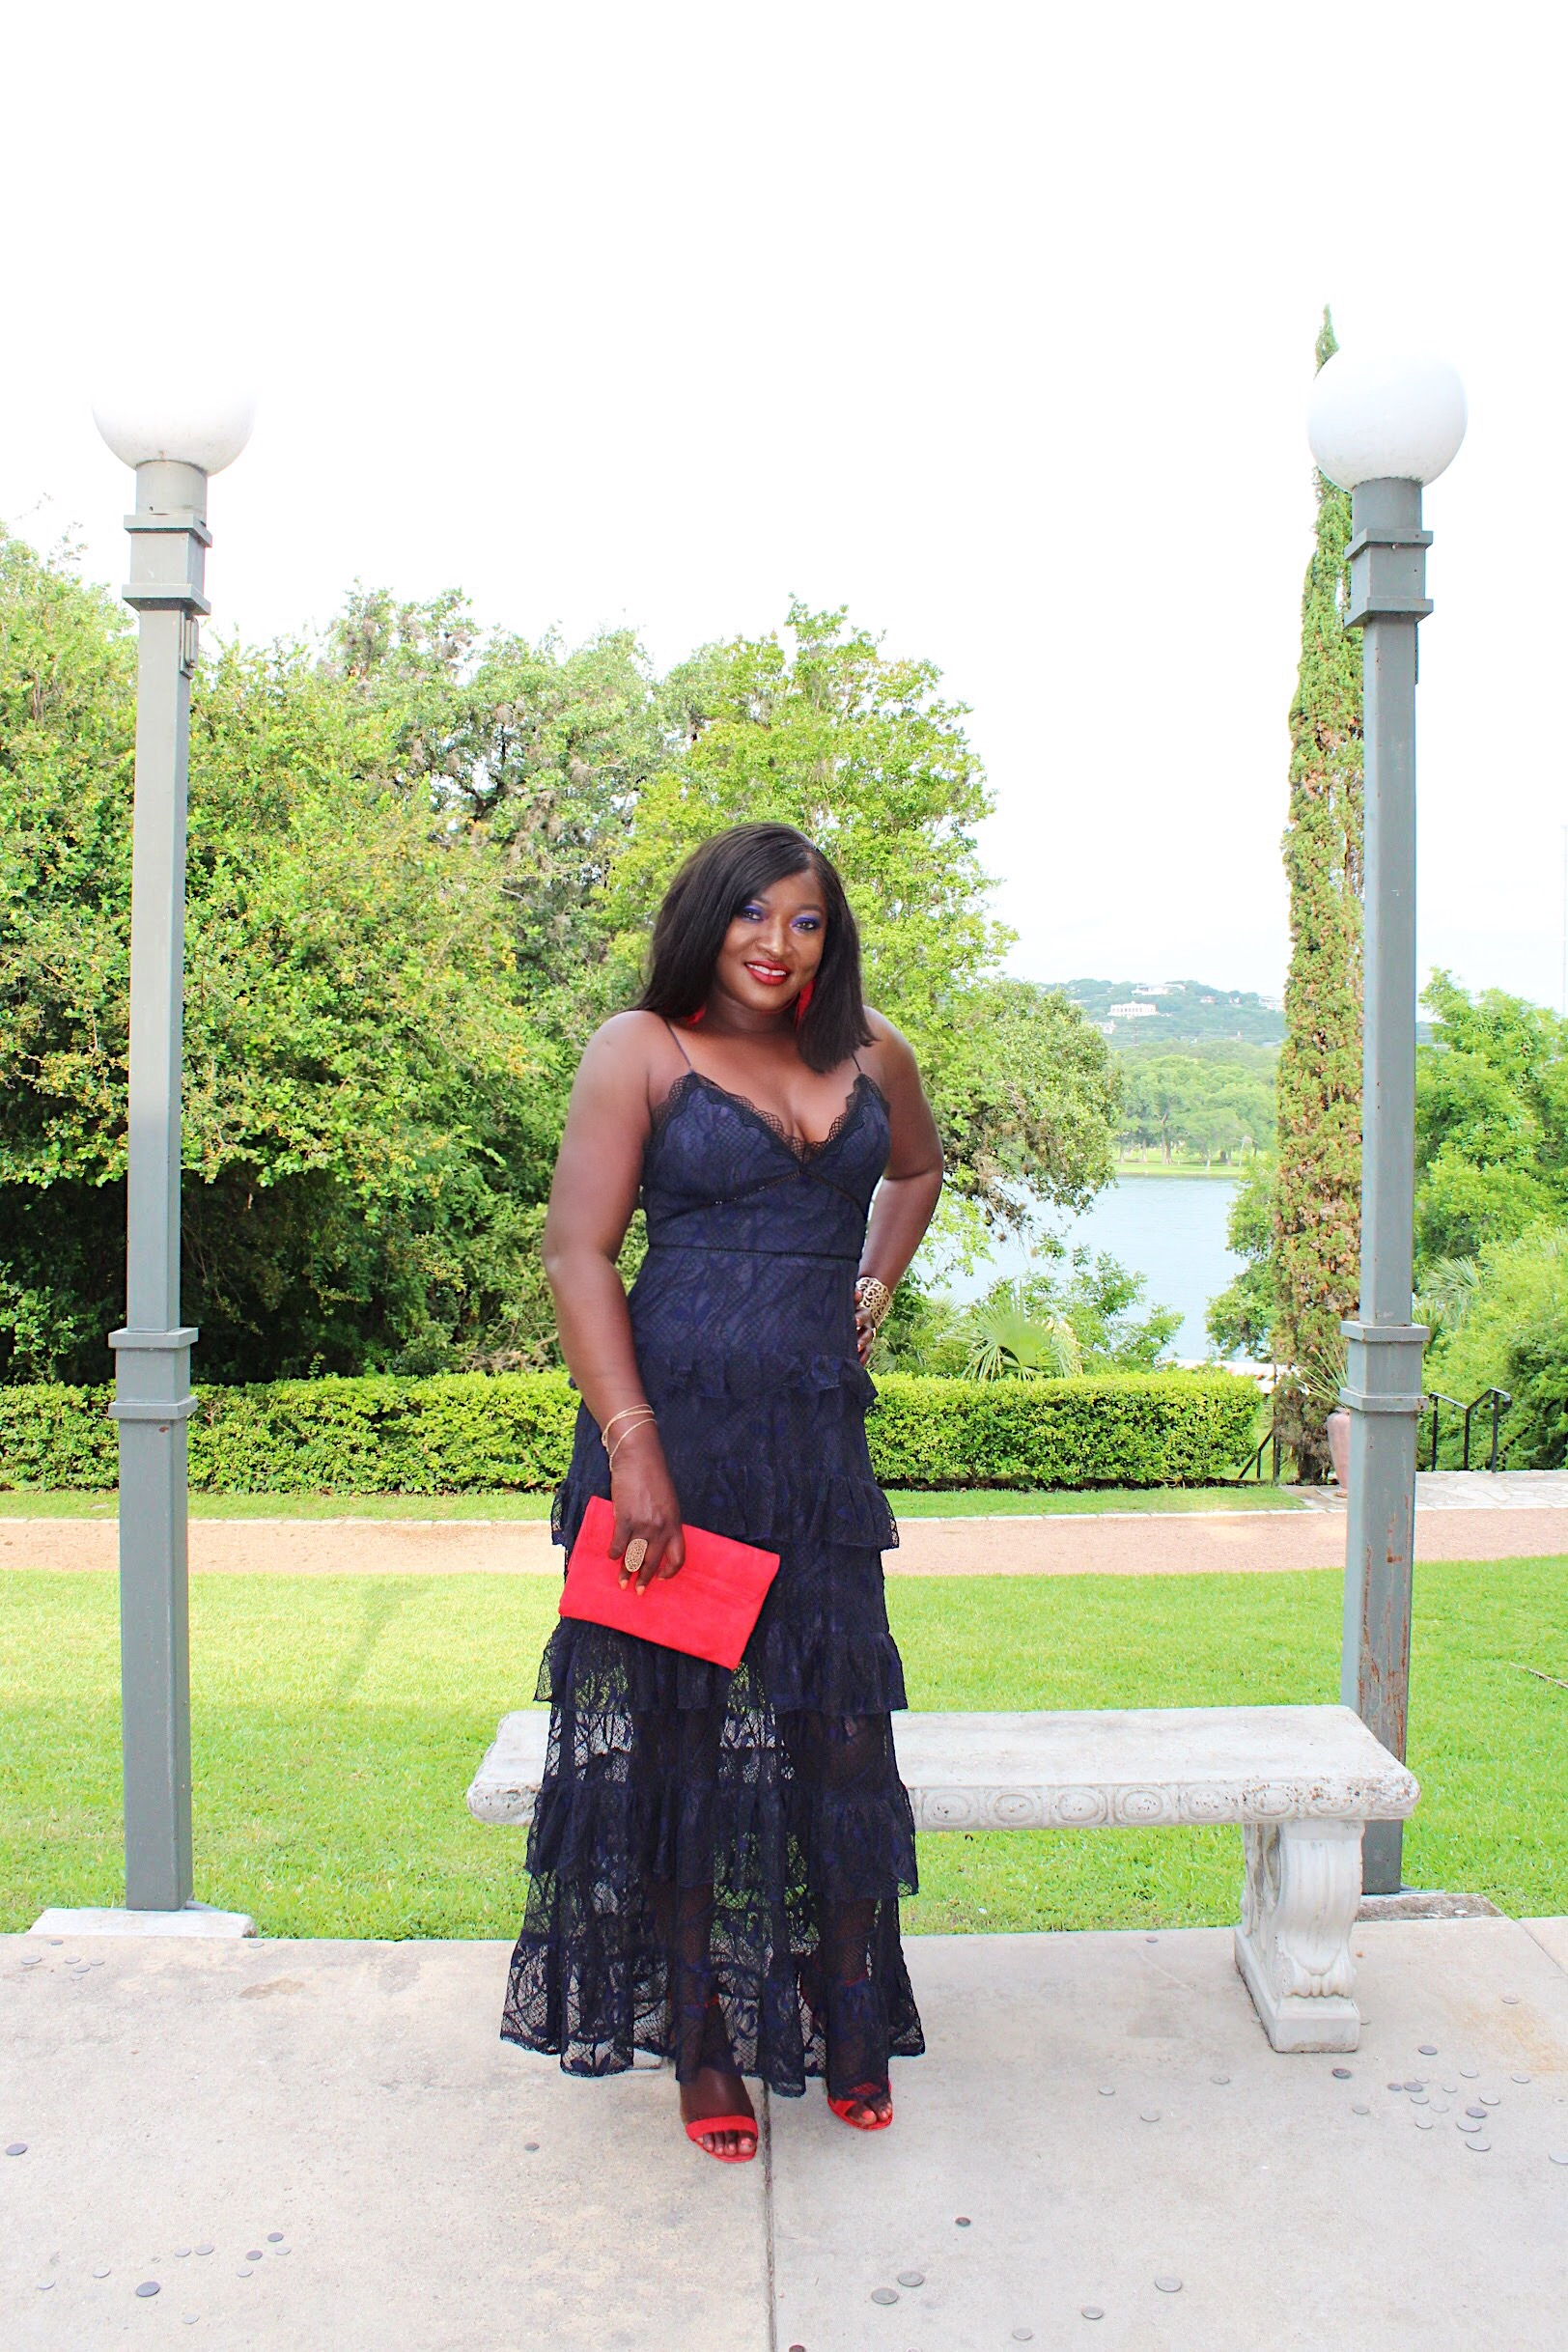 Wedding Guest Look: Tiered Lace Maxi dress With Red Accents